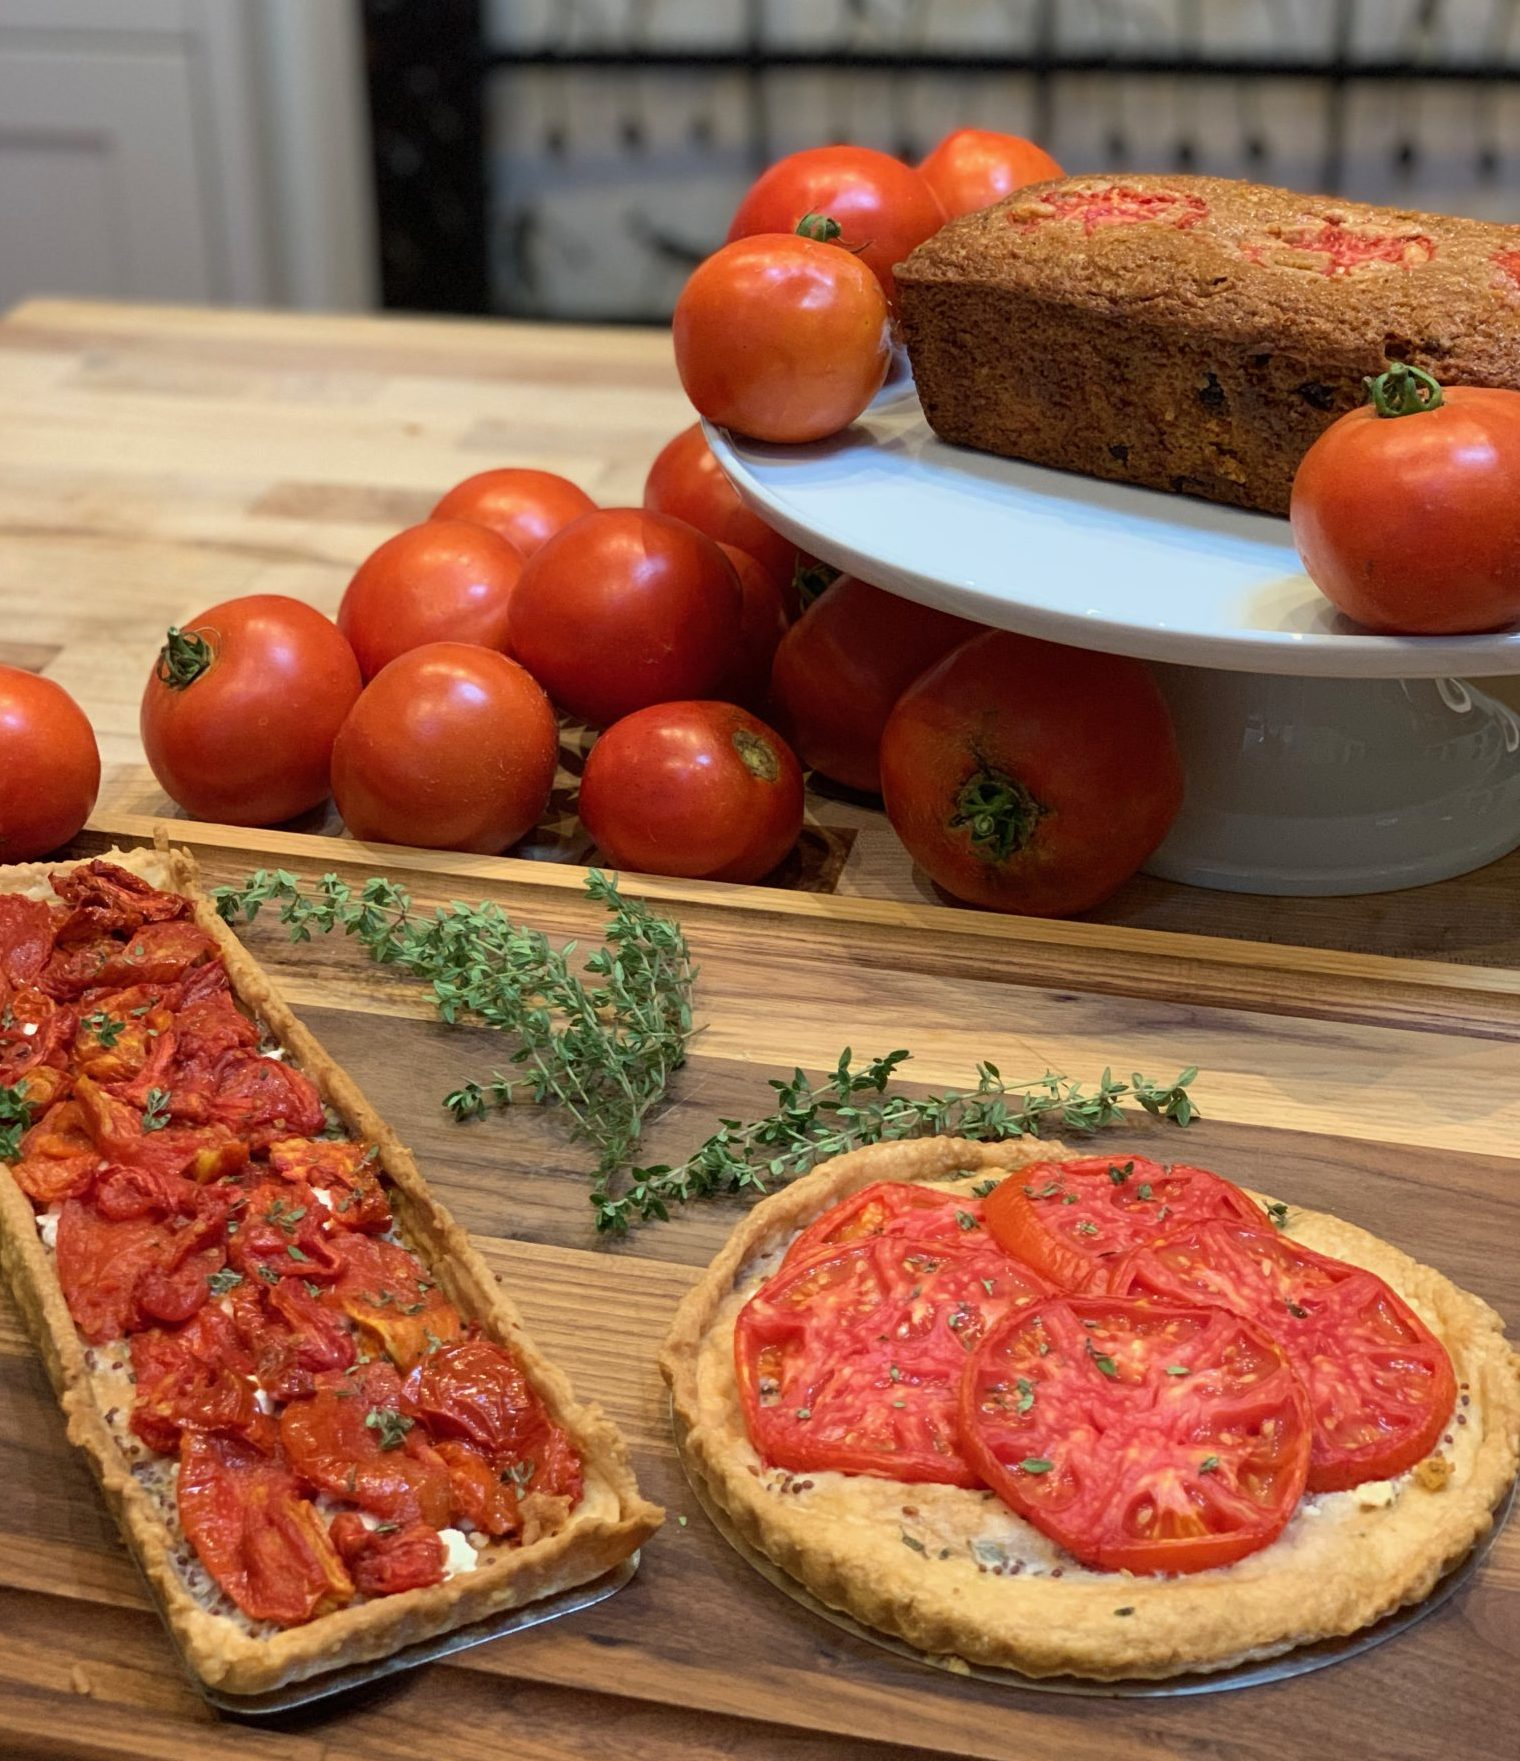 Displaying baked goods which can be made with fresh tomatoes